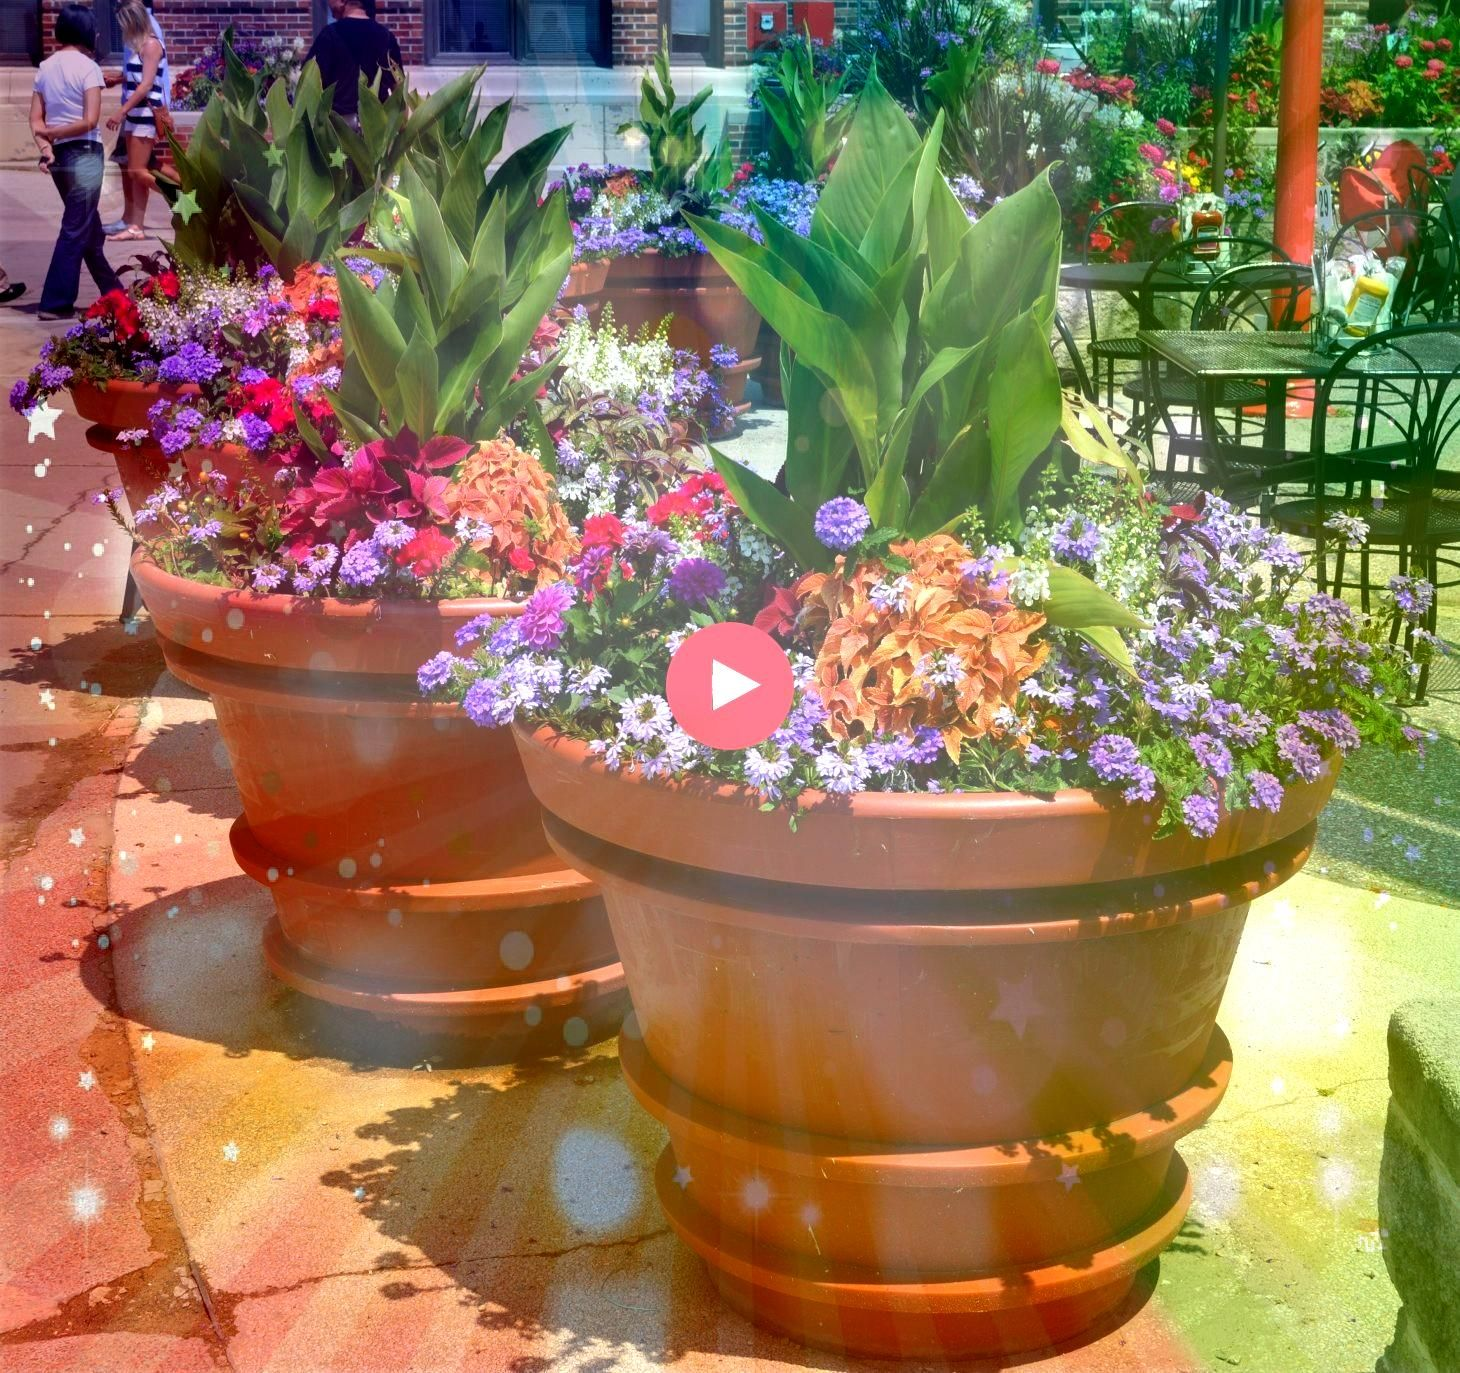 Gorgeous Full Sun Container Plants Ideas To Make Up Your Garden  DECORATHING25 Gorgeous Full Sun Container Plants Ideas To Make Up Your Garden  DECORATHING Instructions o...